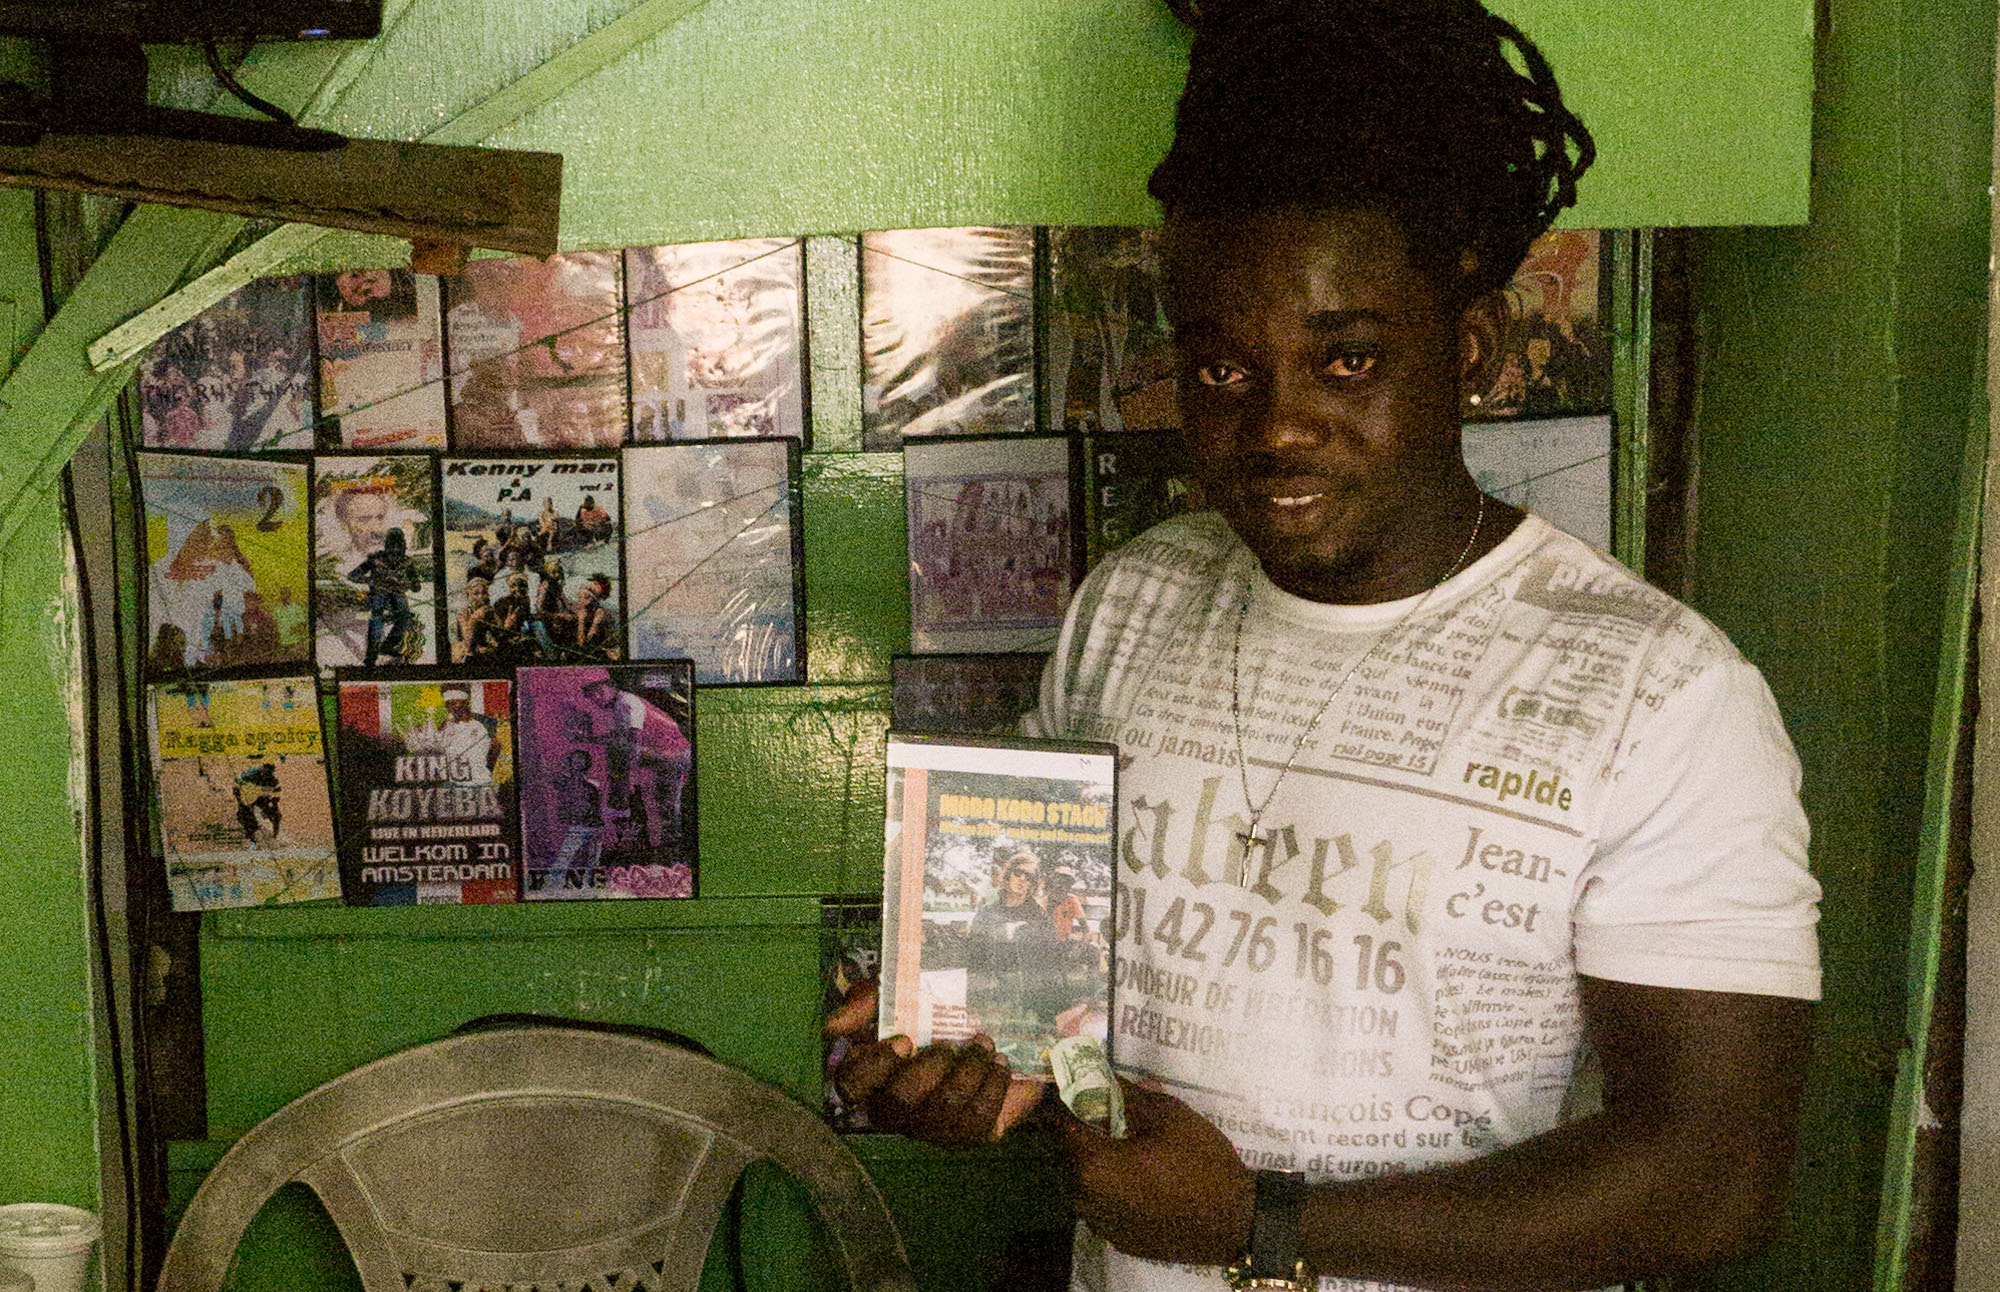 In 2015 I re-visited Surinam and spread DVDs of the modo Kodo adventure through the dvd shops you can find everywhere.